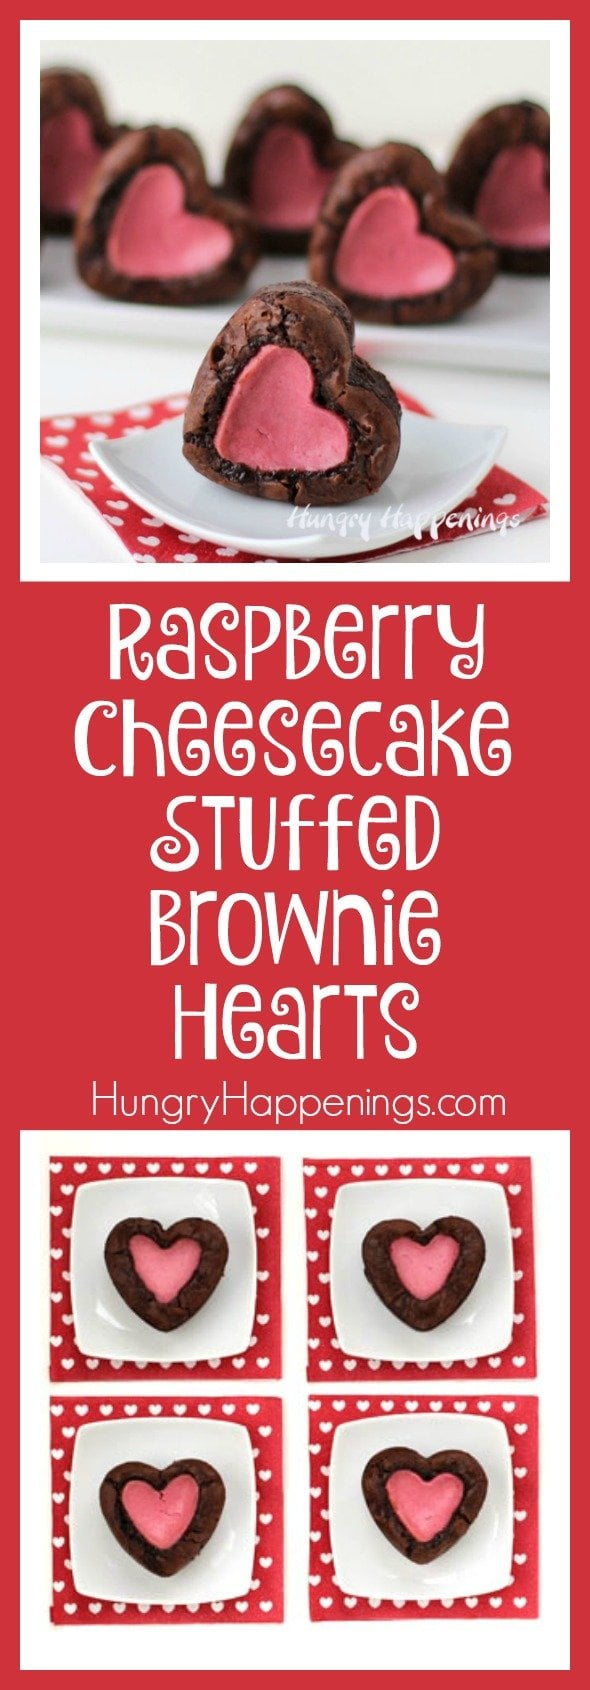 Make your significant other fall in love with you all over again by making them these Raspberry Cheesecake Stuffed Brownie Hearts. They will making you drop everything and focus completely on the intense taste they have!